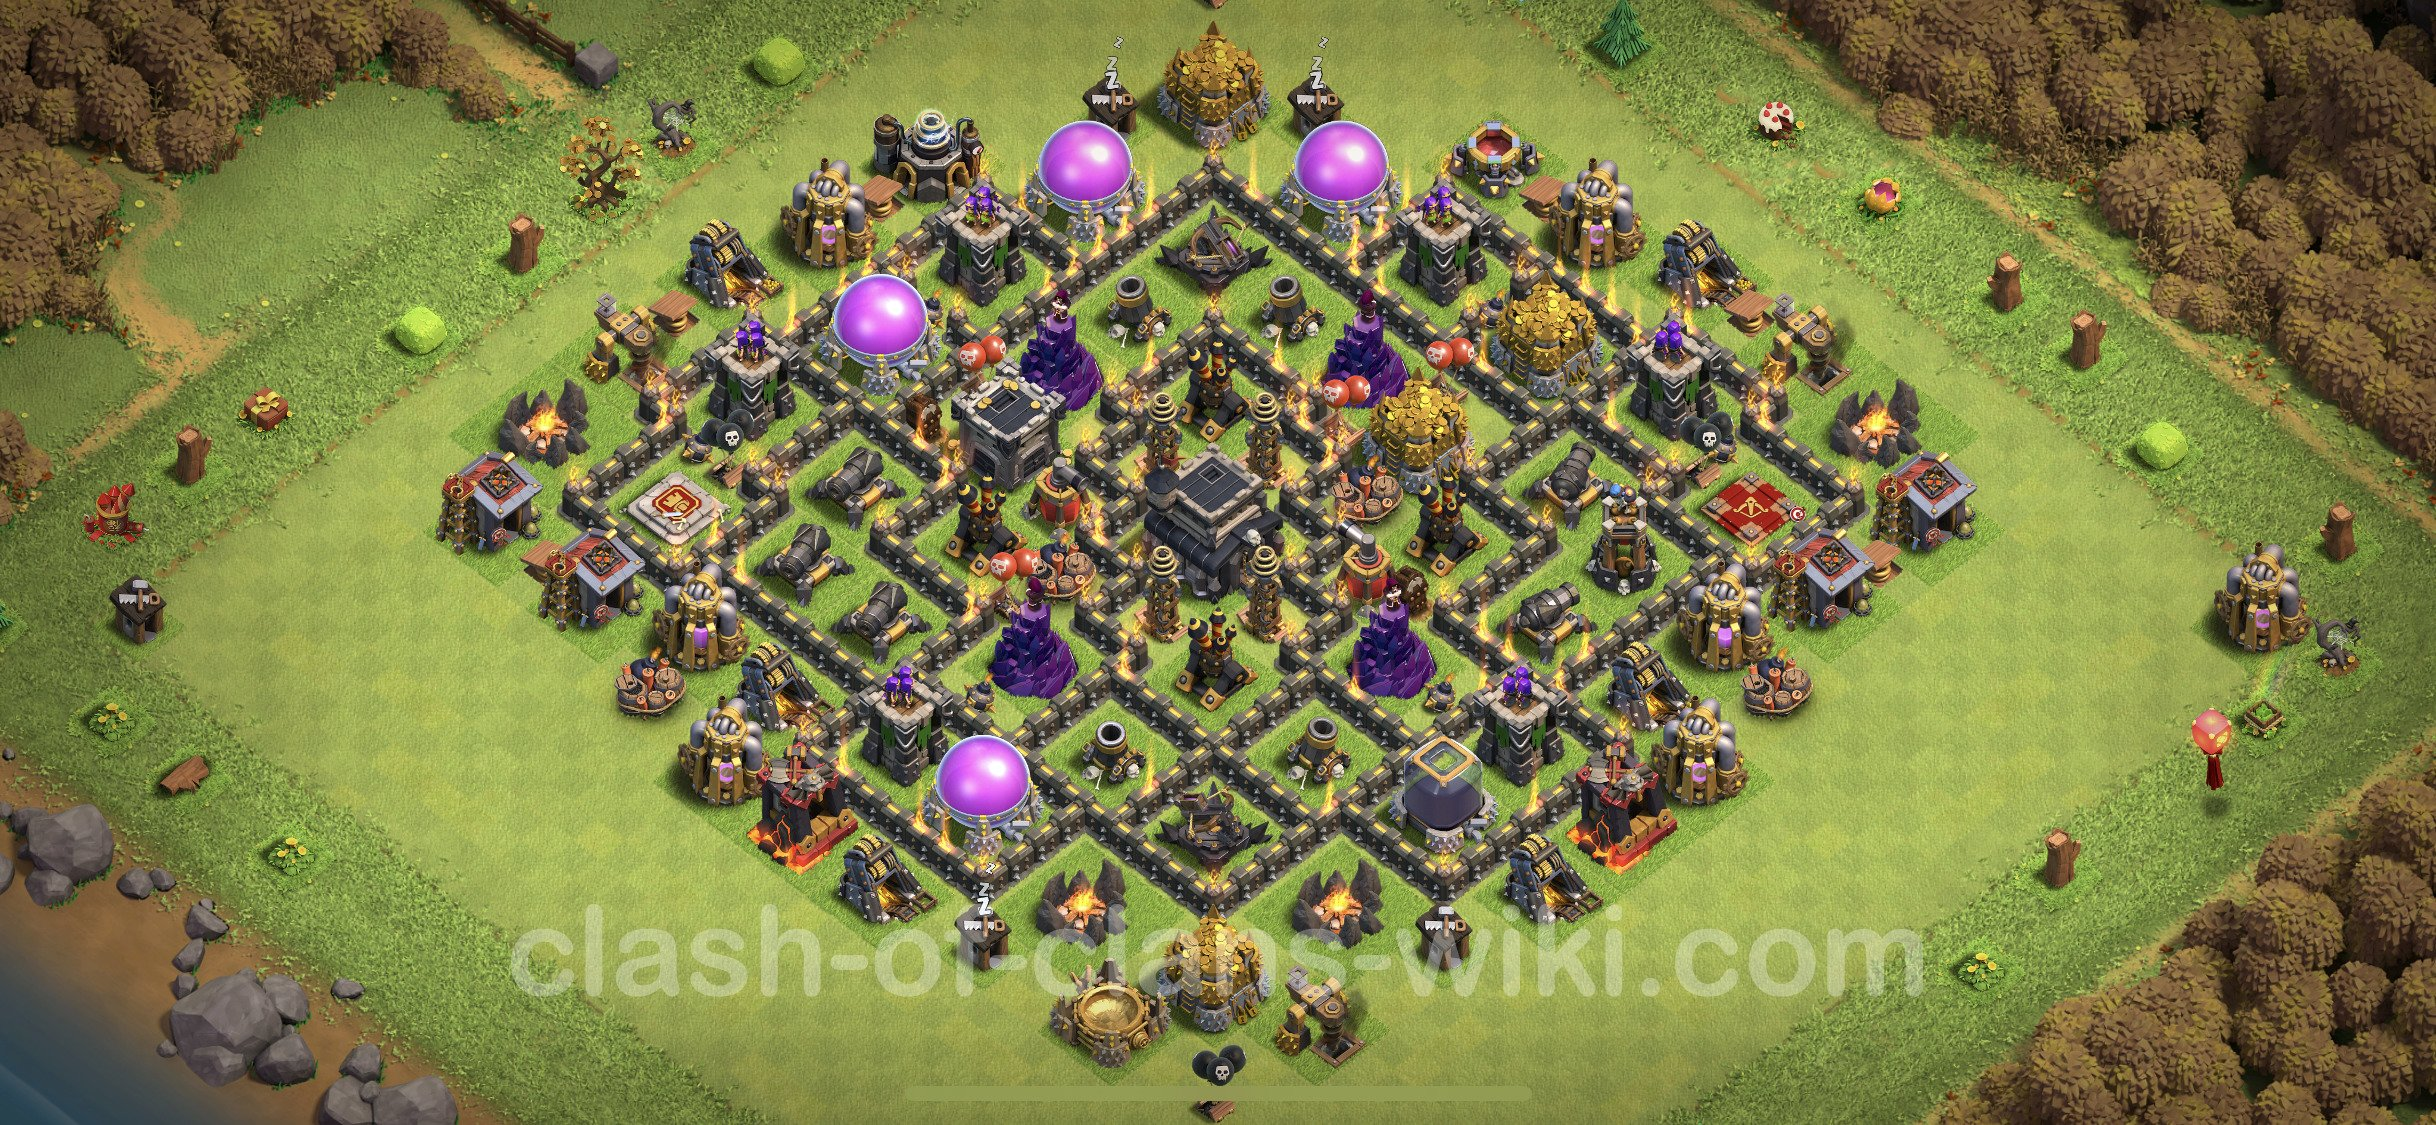 Best Base TH9 with Link Anti Everything - Town Hall Level 9 Base Copy -  (#371)